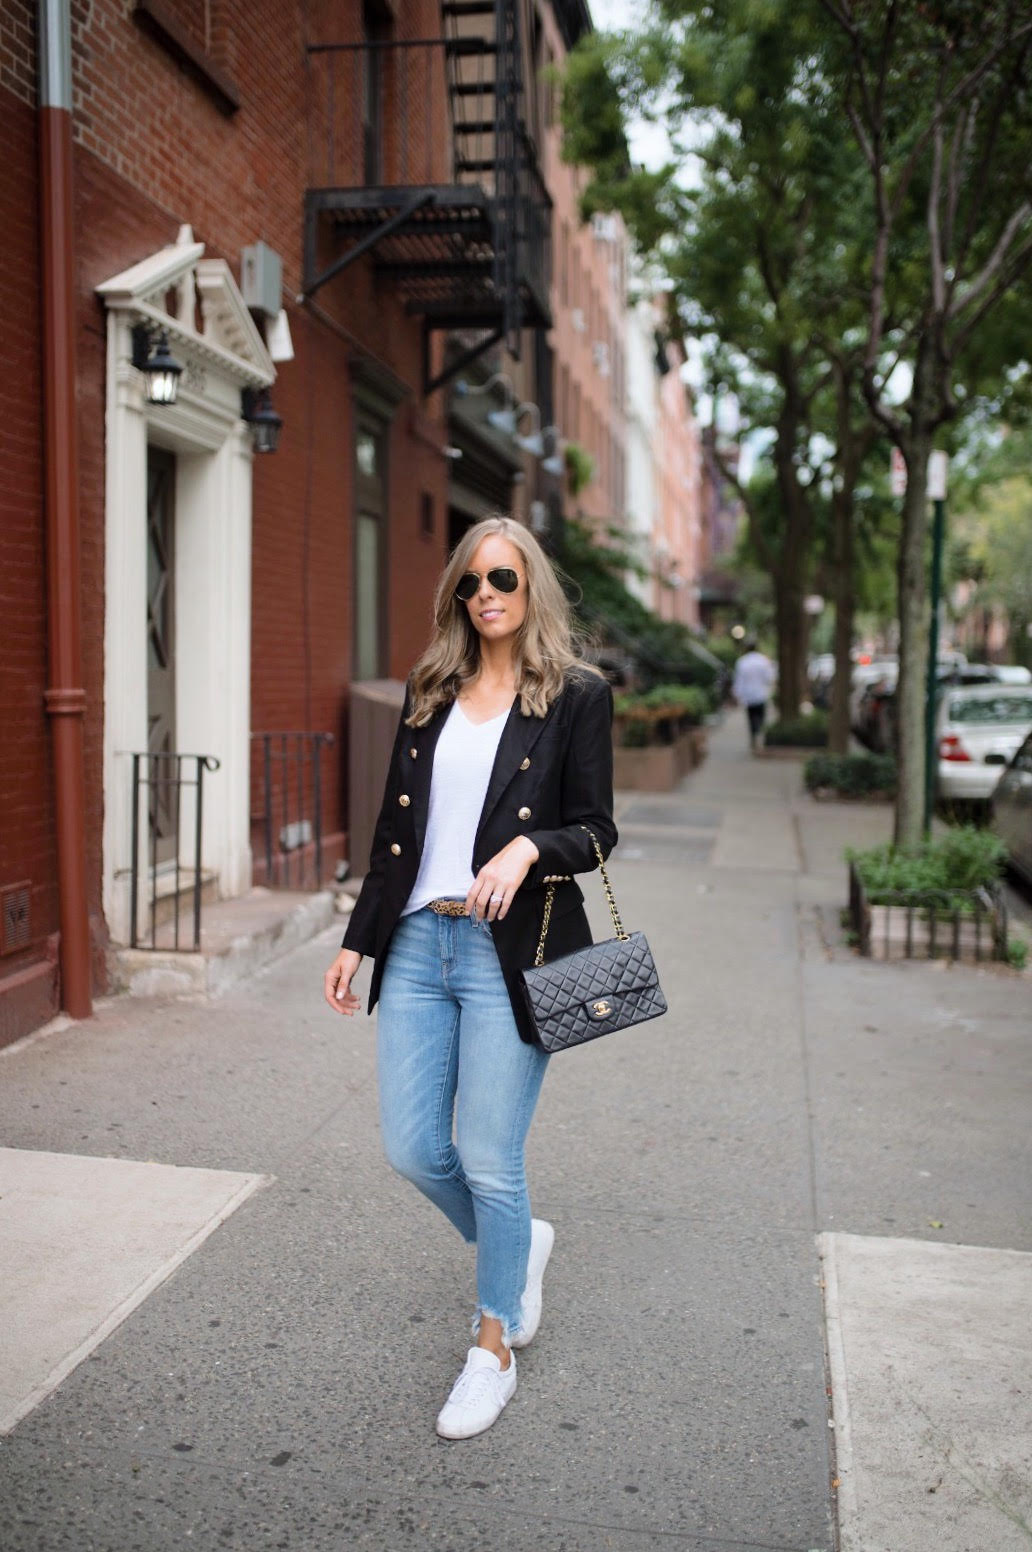 e94e248d279 casual outfit ideas blue distressed jeans white sneakers balmain blazer  chanel bag fashion blogger new york